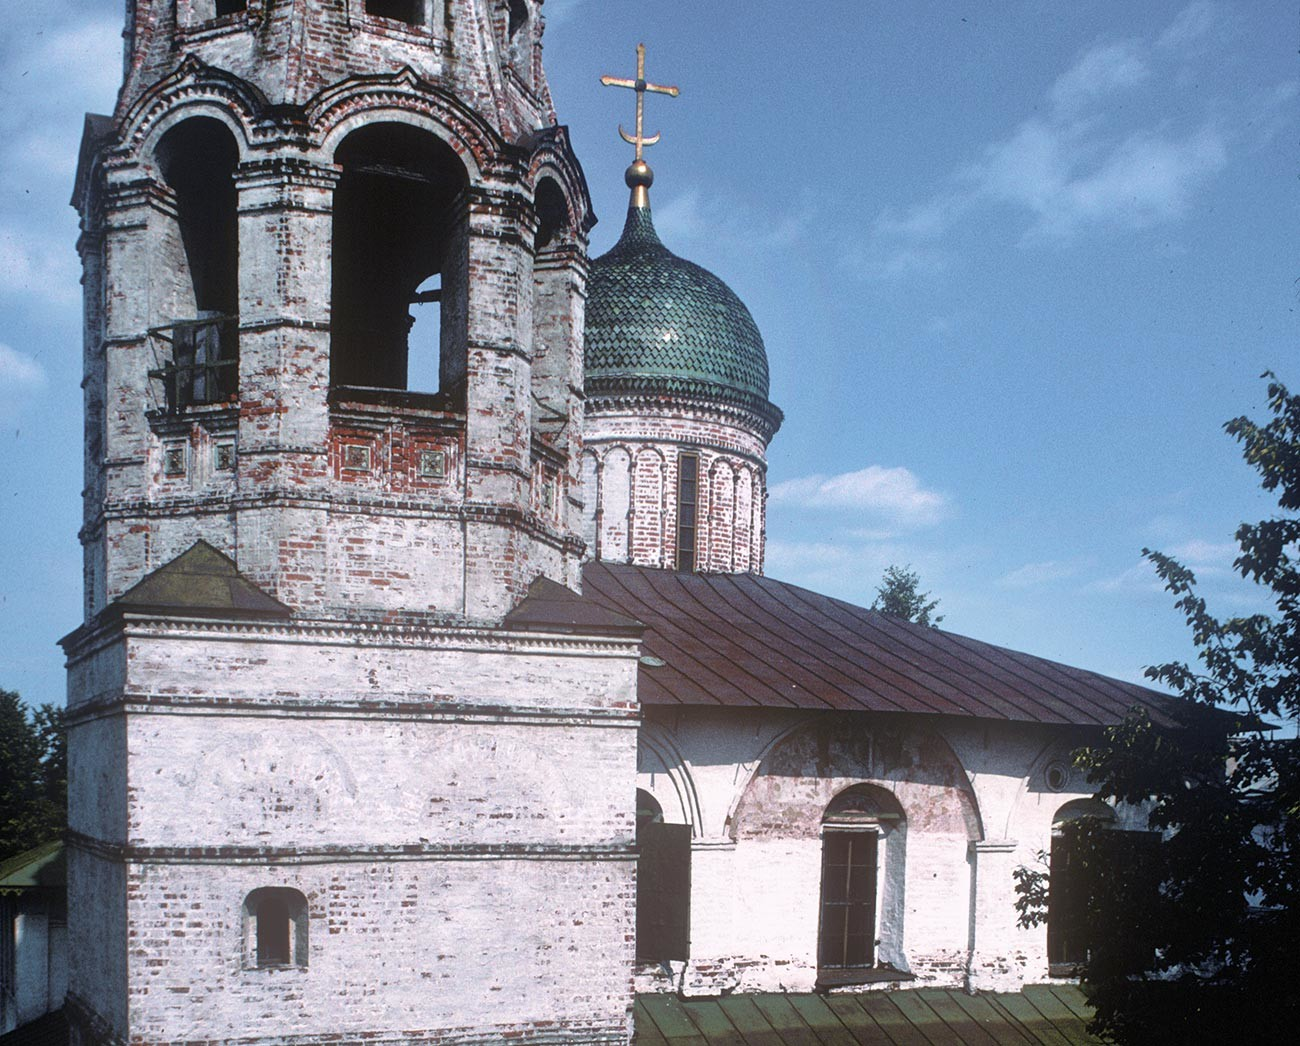 Yaroslavl. Church of St. Nicholas Nadein. West view, upper tier with bell tower. July 27, 1998